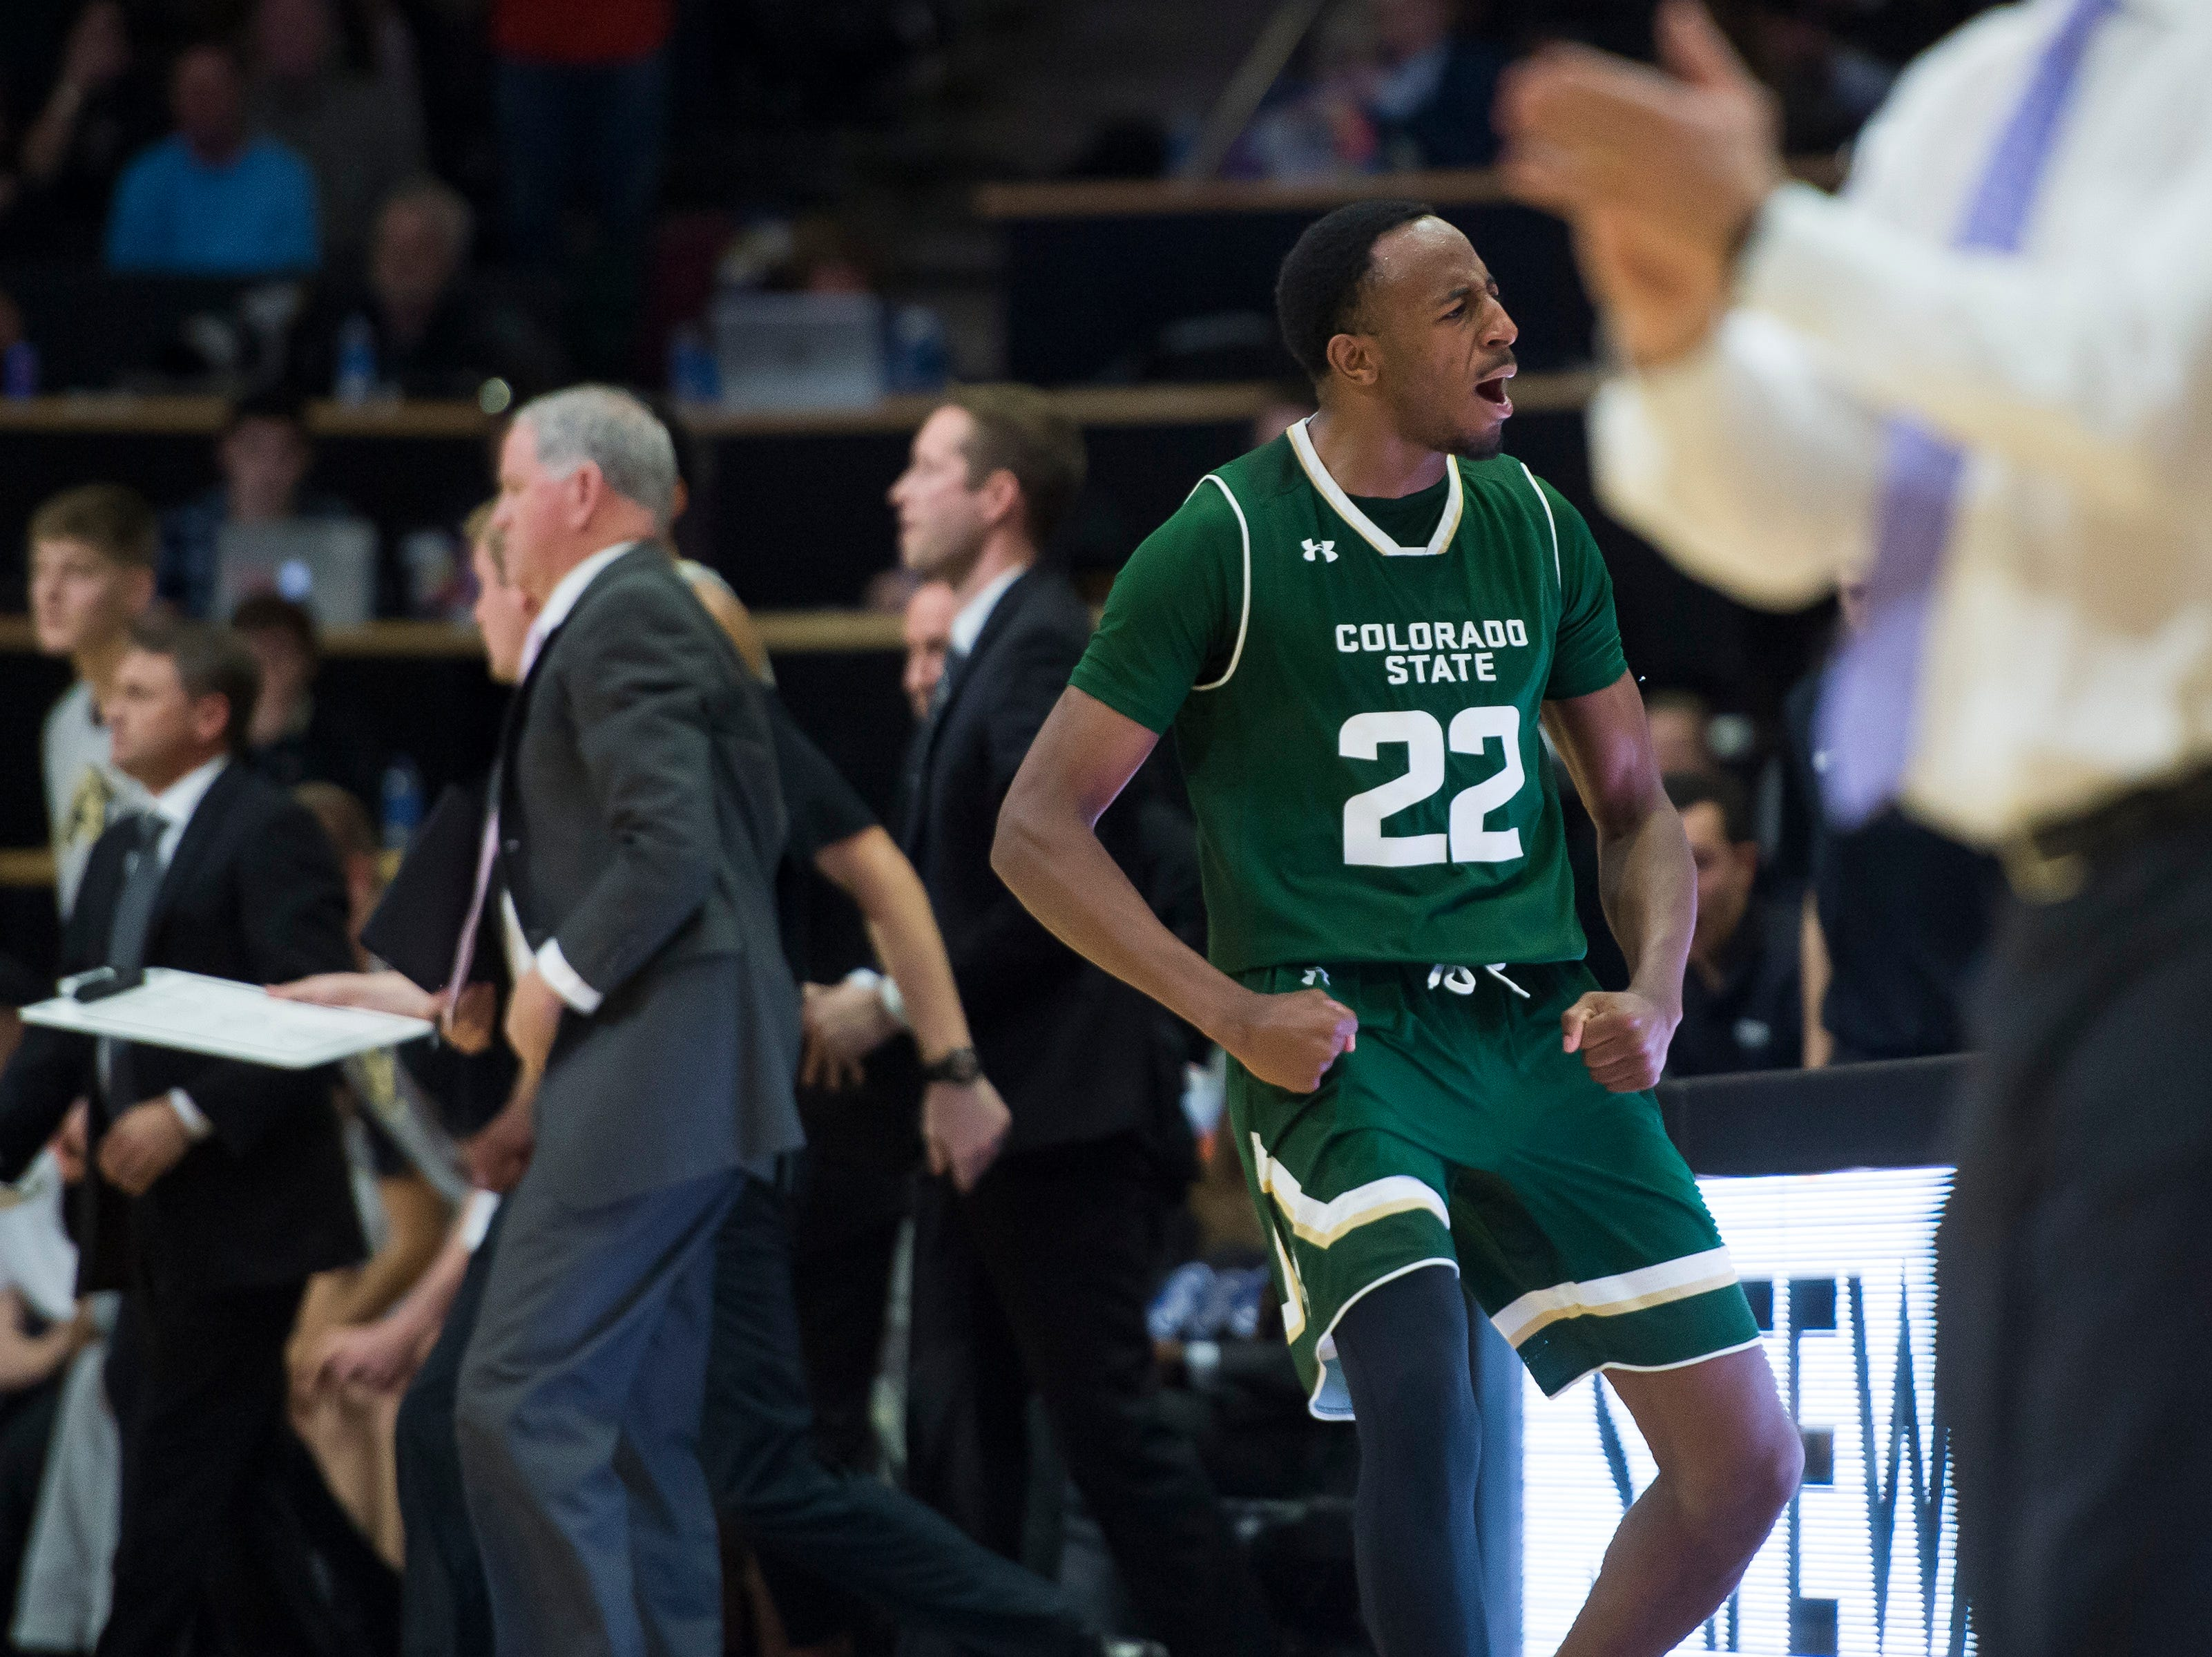 Colorado State University senior guard J.D. Paige (22) reacts during a game against the University of Colorado on Saturday, Dec. 1, 2018, at the CU Event Center in Boulder, Colo.